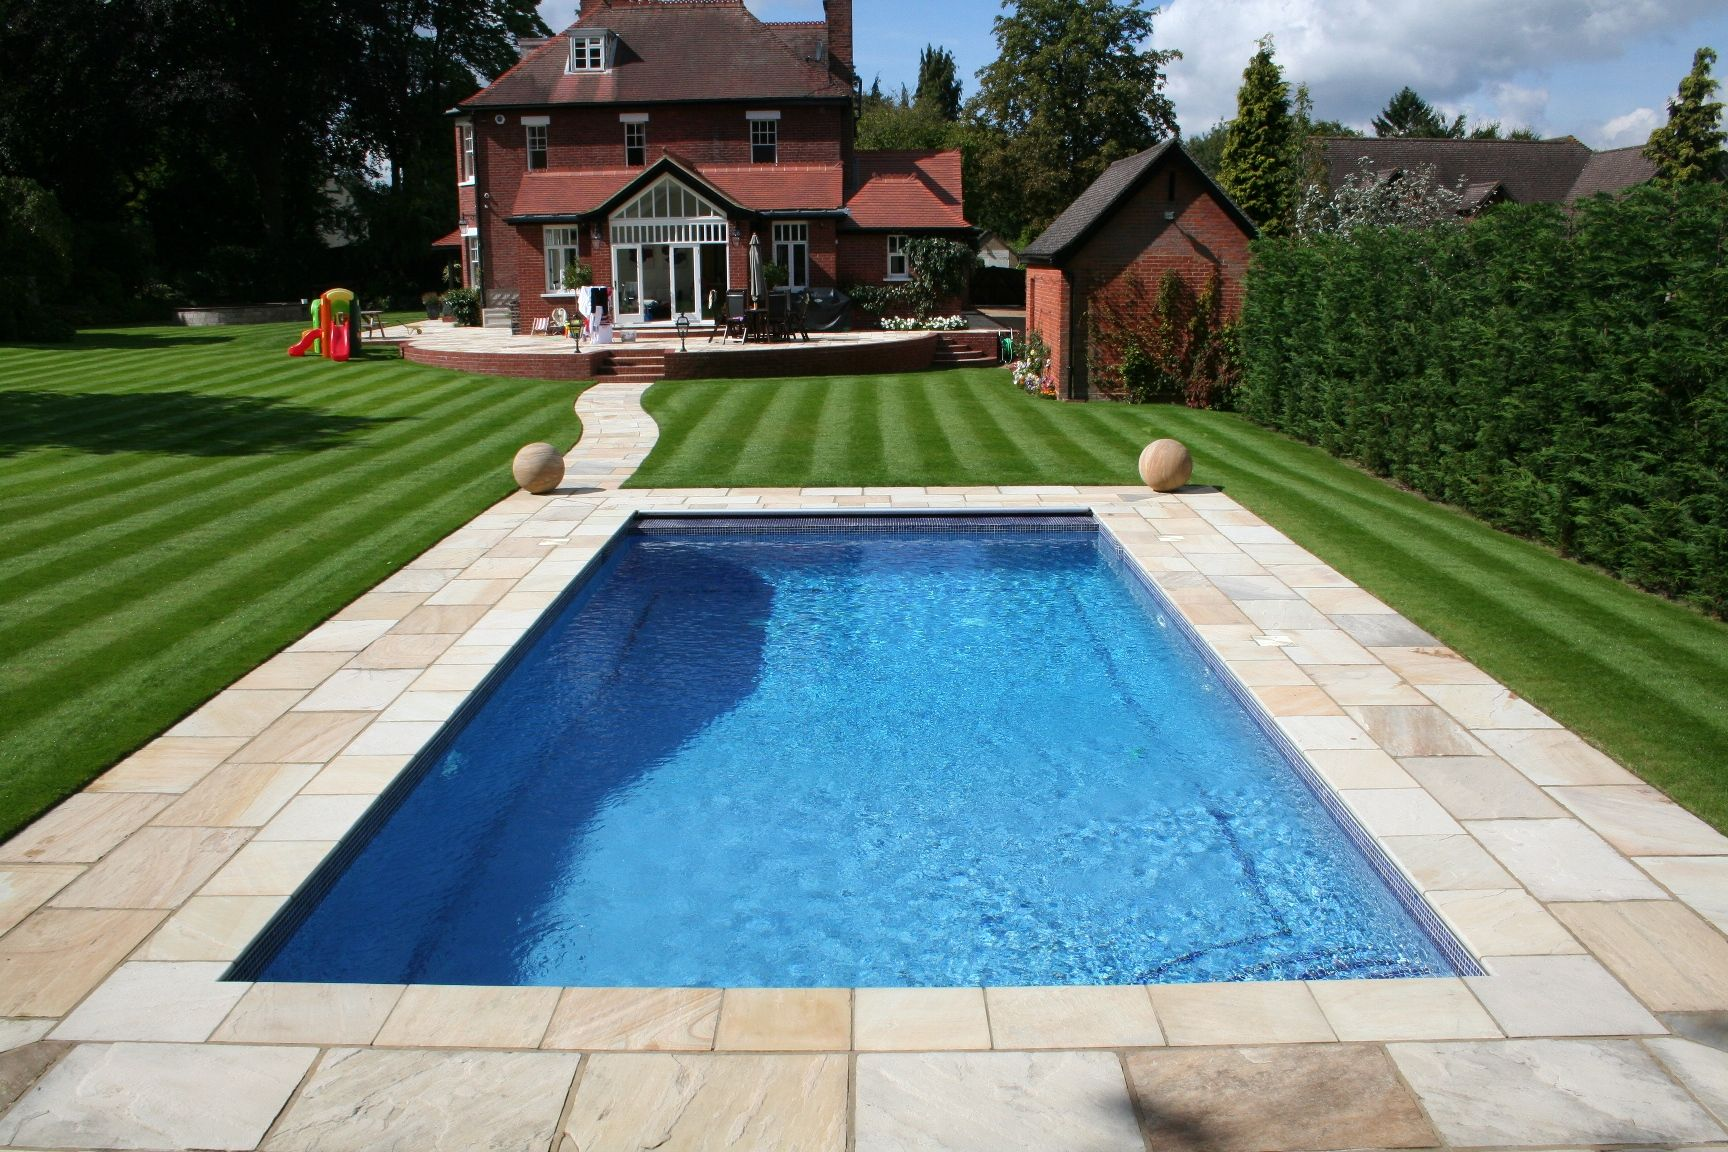 How To Take Care Of An Inground Swimming Pool Loved And Pinned By Www Hotquipment Ca